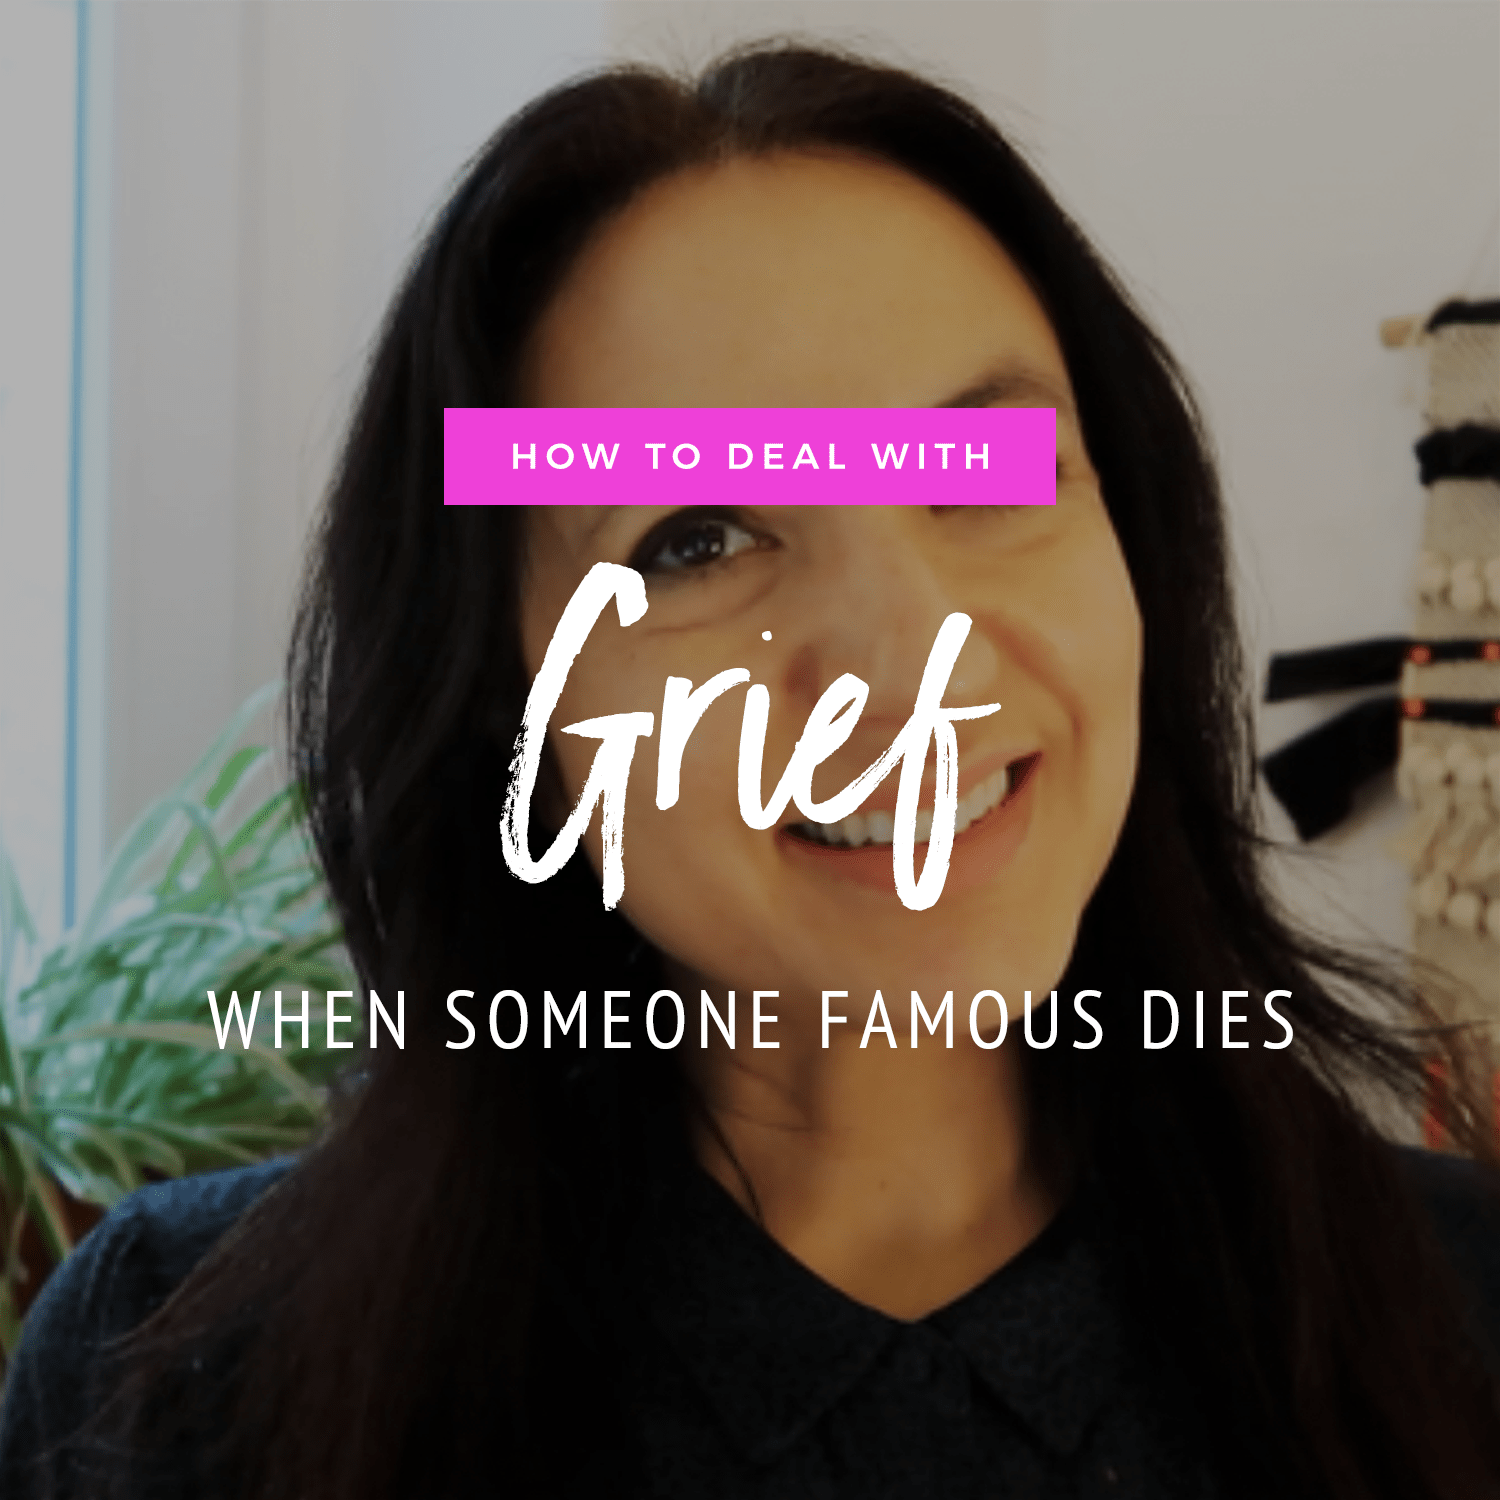 How To Deal With Grief When Someone Famous Dies